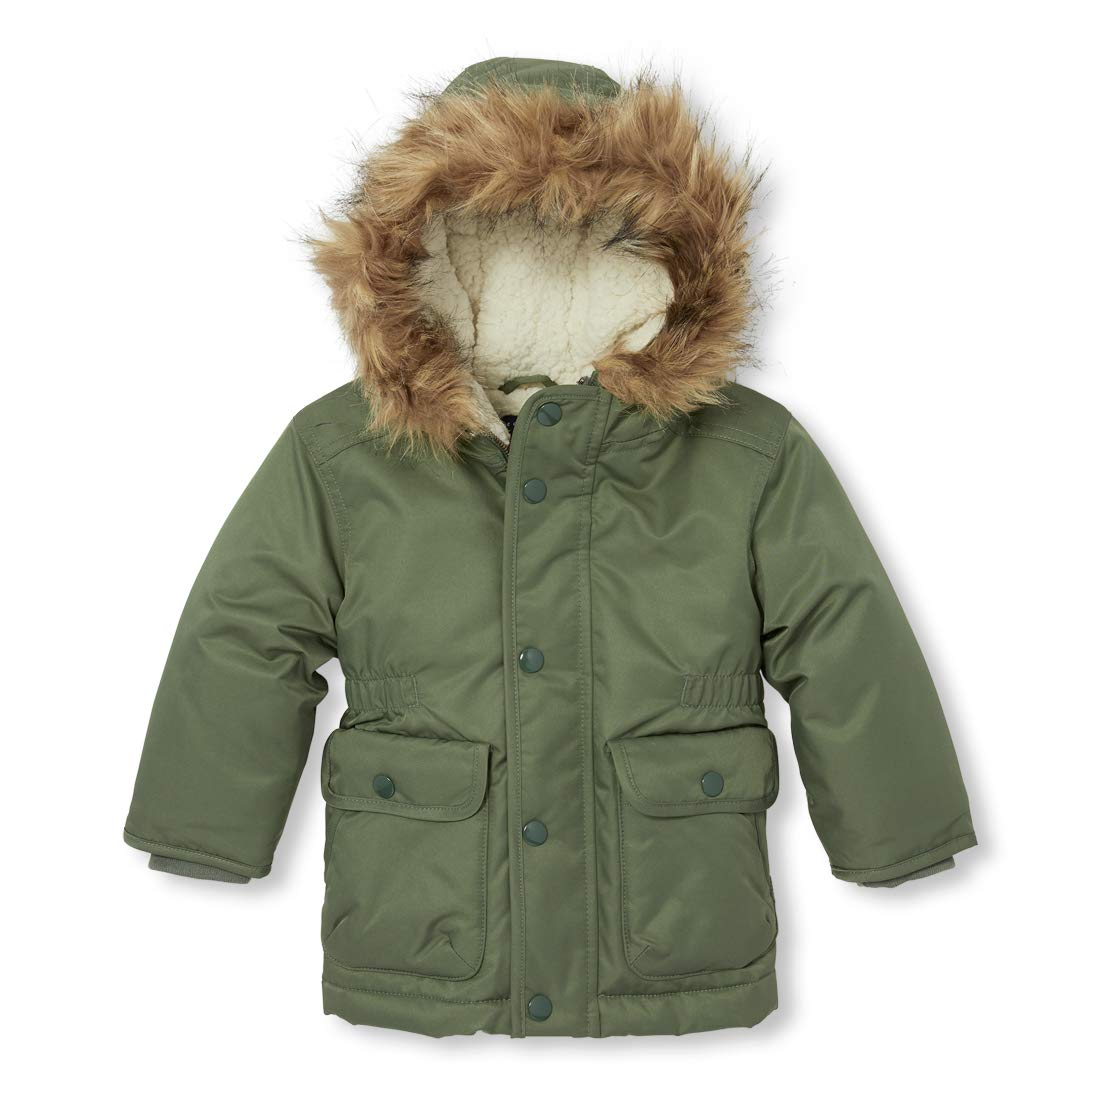 3bd343ad2 Amazon.com  The Children s Place Baby Boys Parkas  Clothing